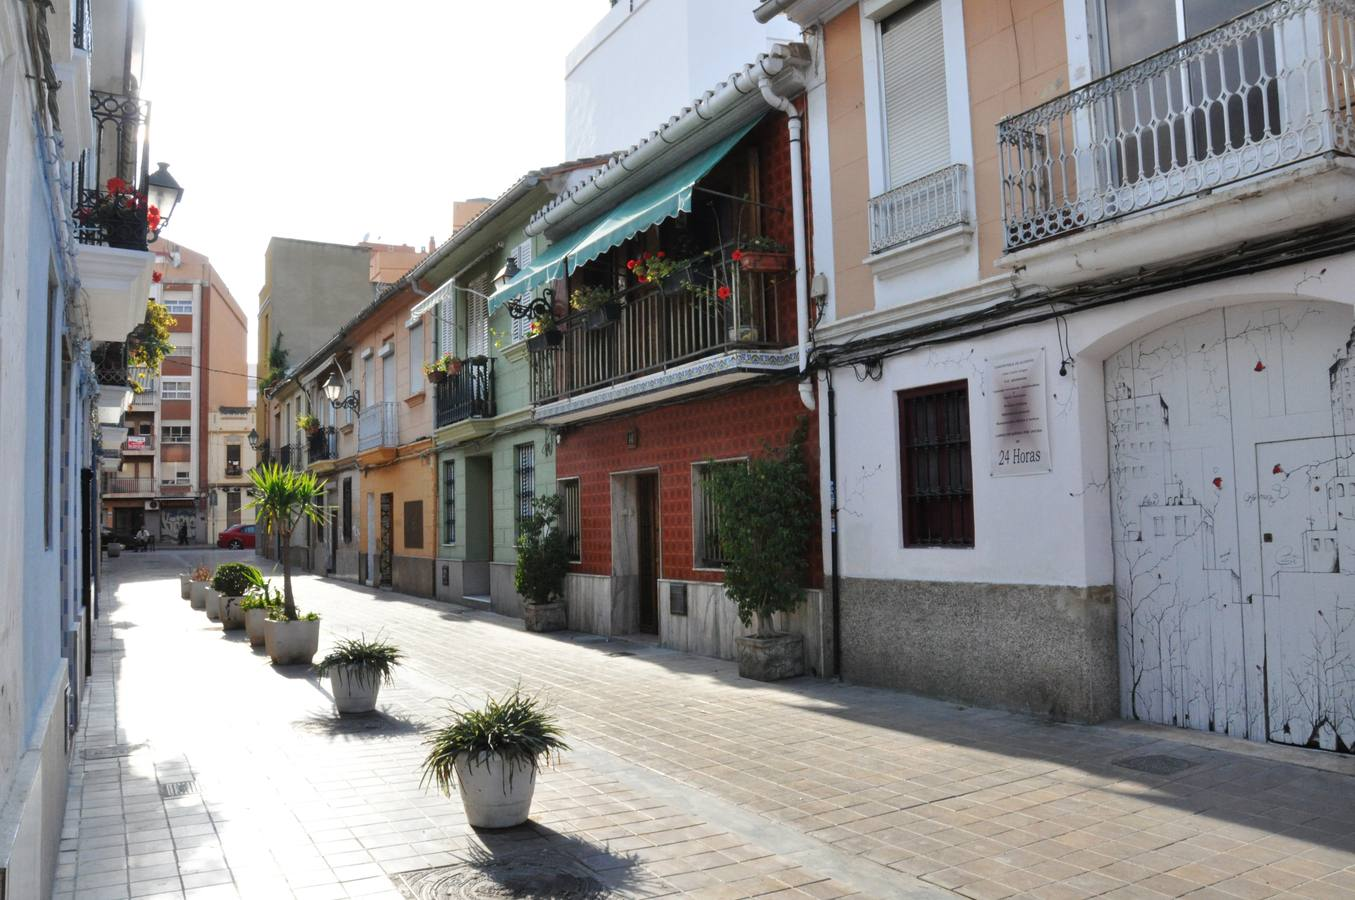 UNKNOWN BARRIOS IN VALENCIA: Campanar – Patraix – Benicalap – Benimaclet